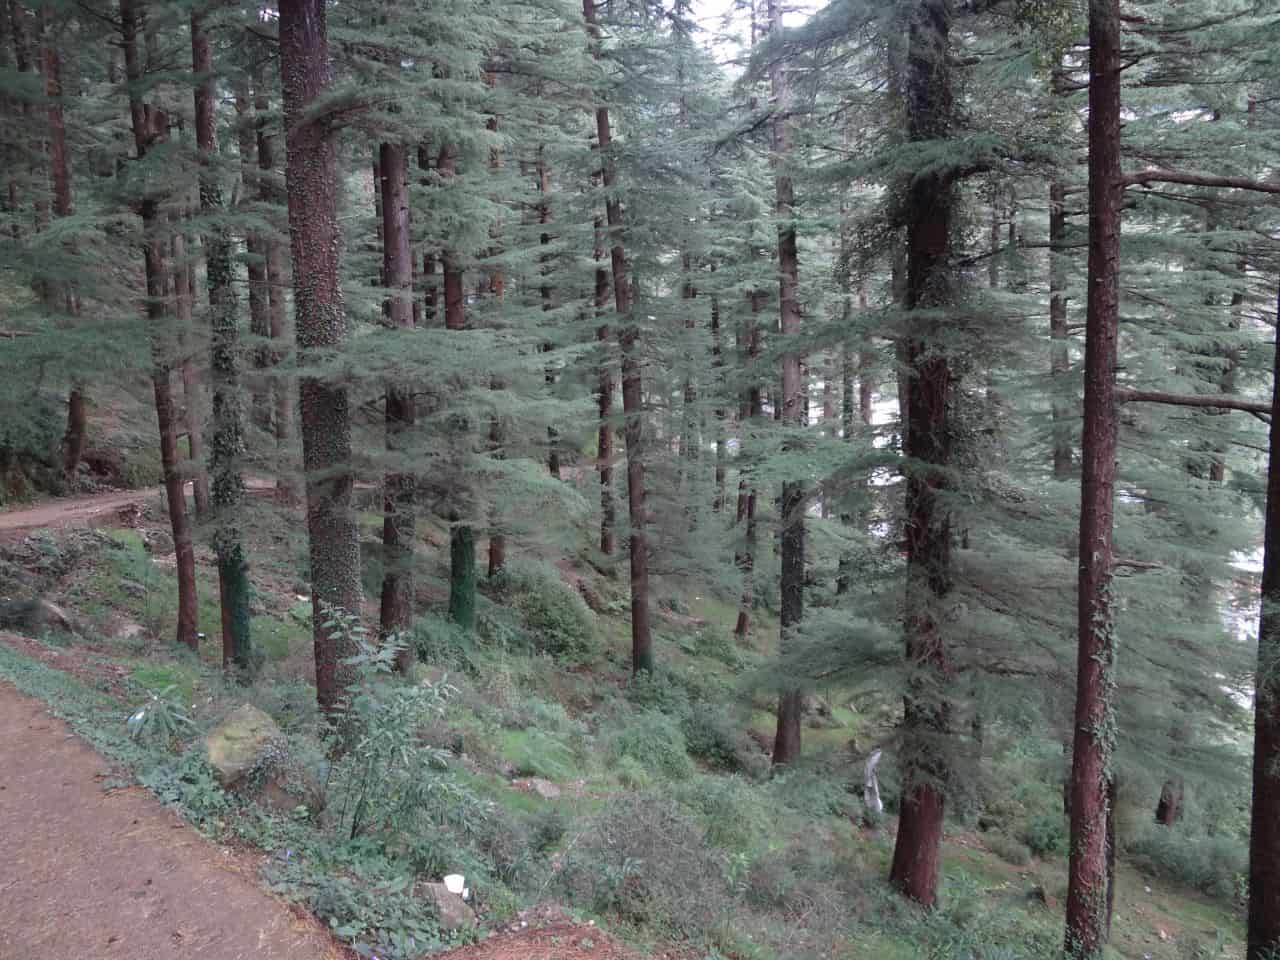 Trail to Dharamkot from Mcleodganj